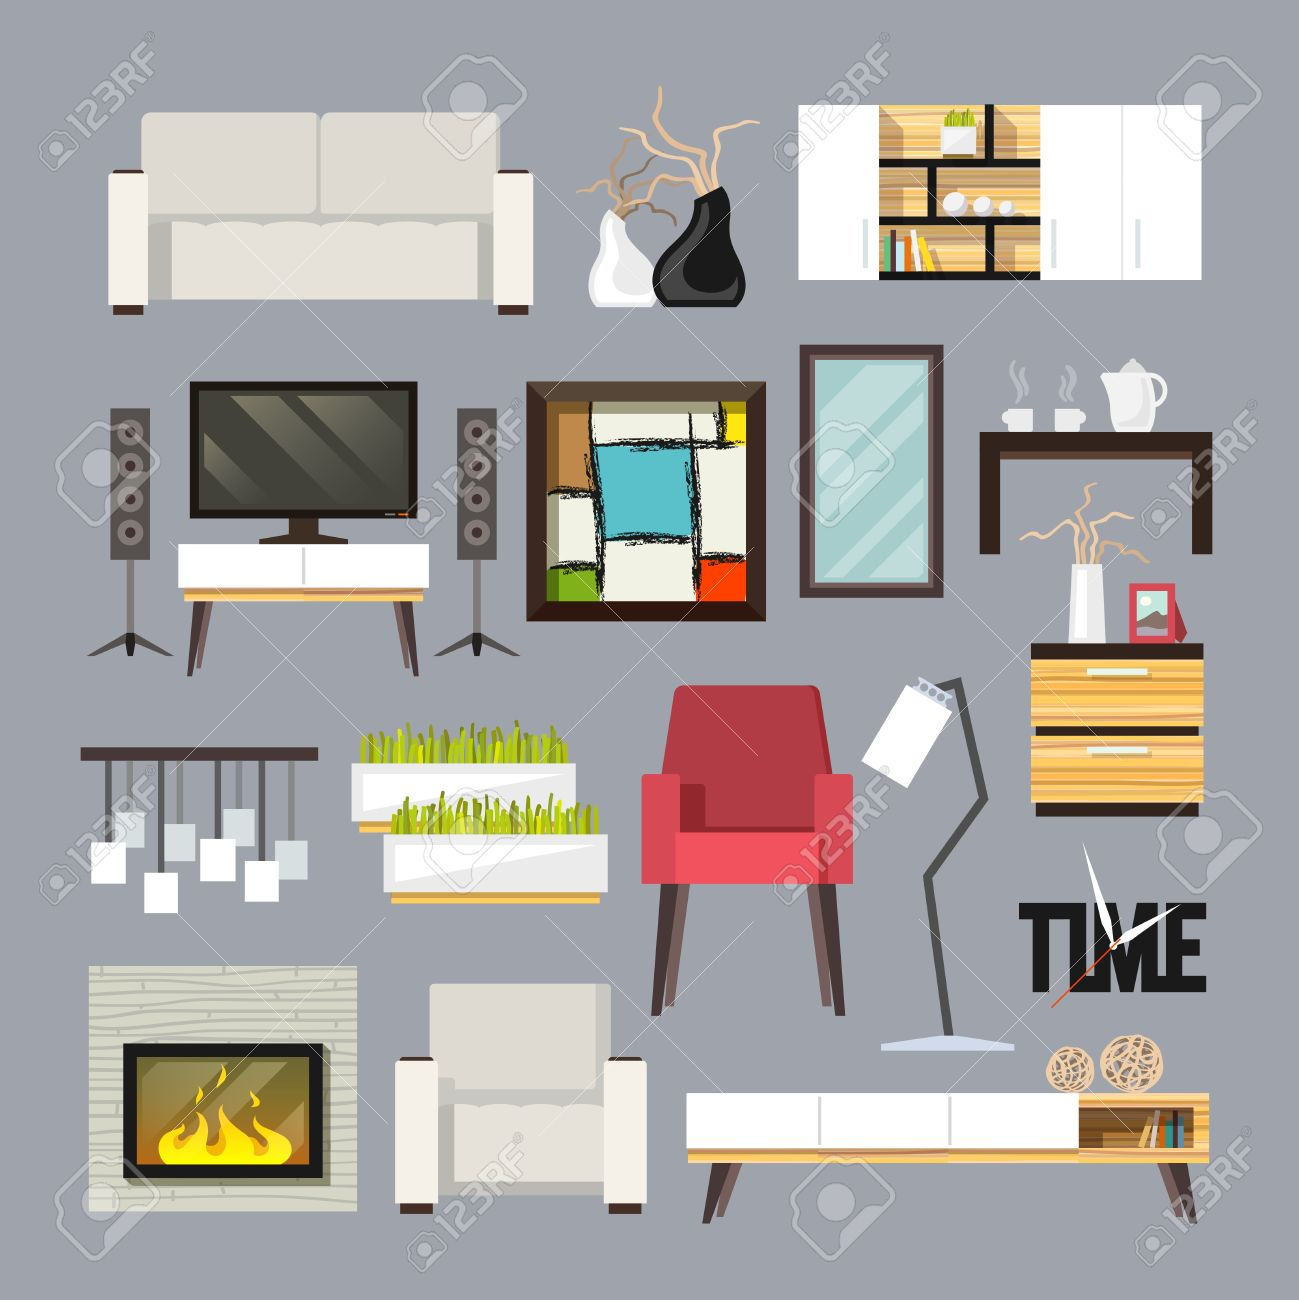 Living room furniture decorative icons set with sofa bookshelf tv table isolated vector illustration Stock Vector